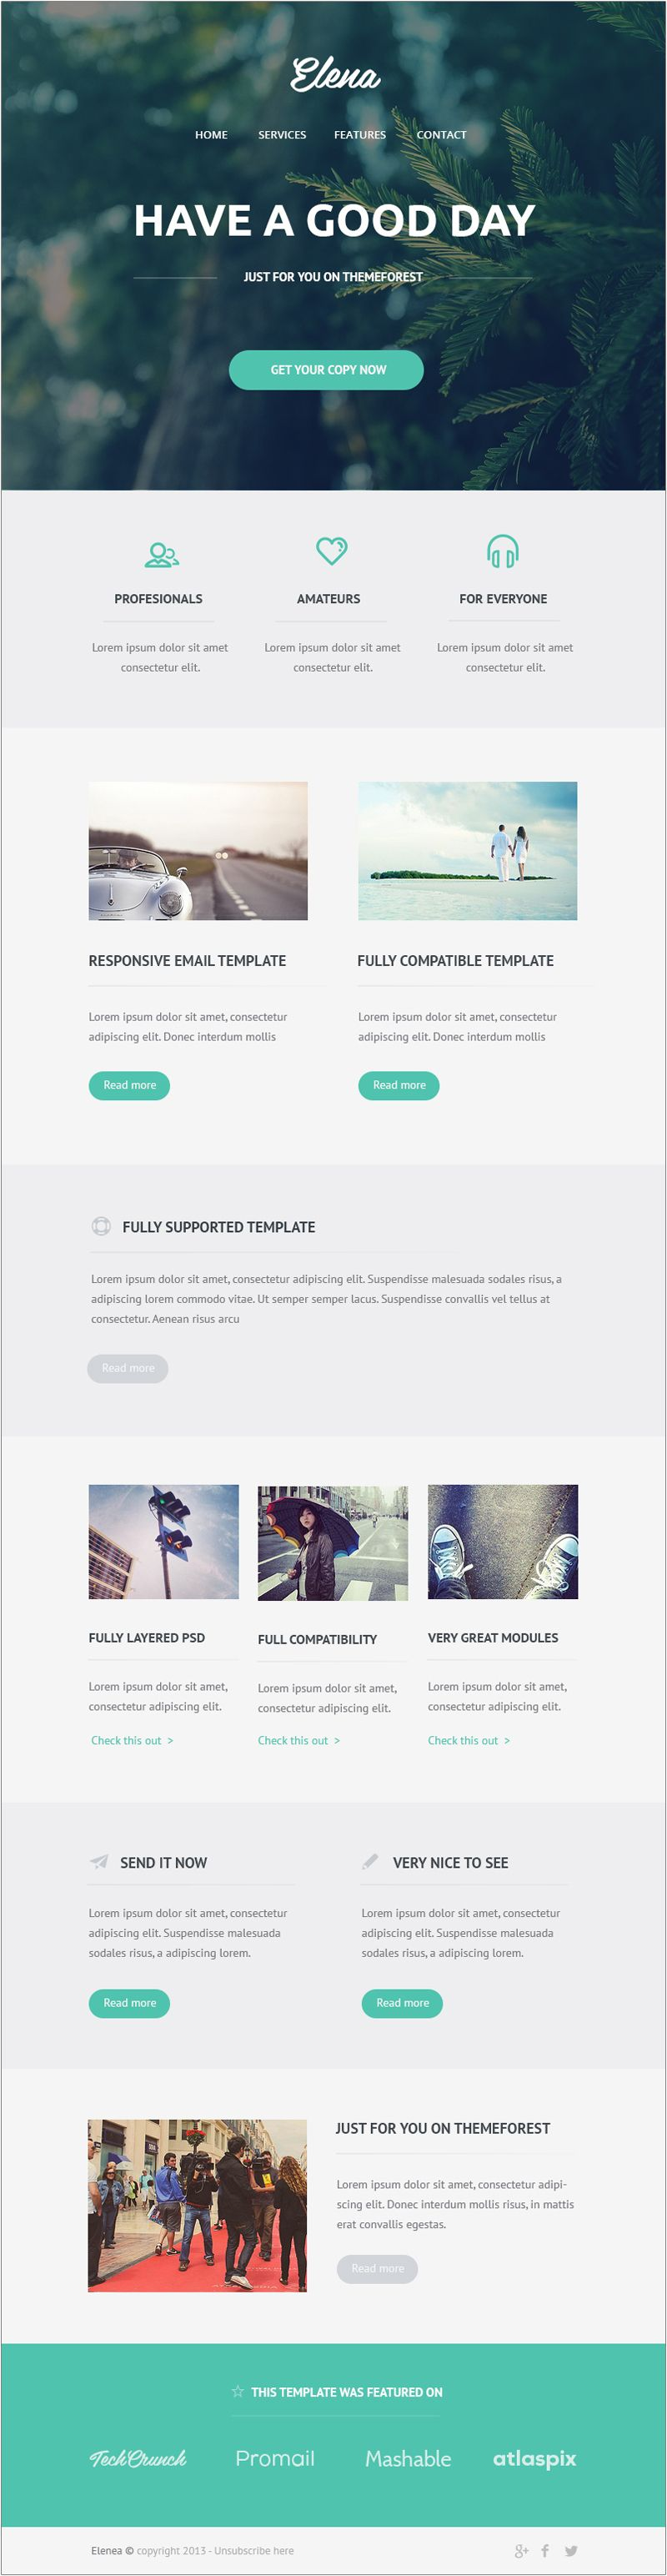 free email newsletter templates psd css author digital freebies